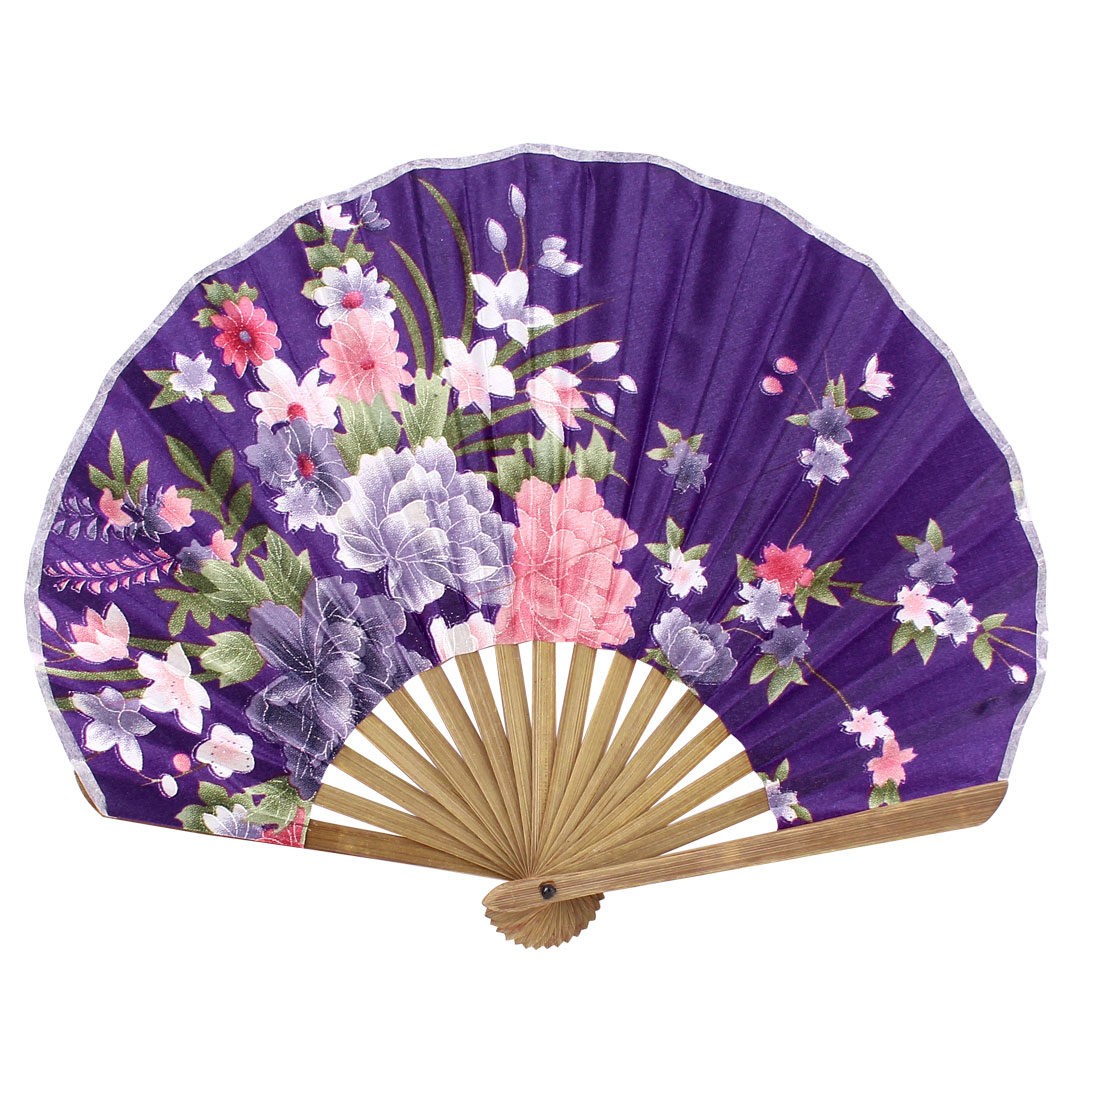 Seashell Design Bamboo Frame Flower Pattern Summer Cool Foldable Hand Fan Purple